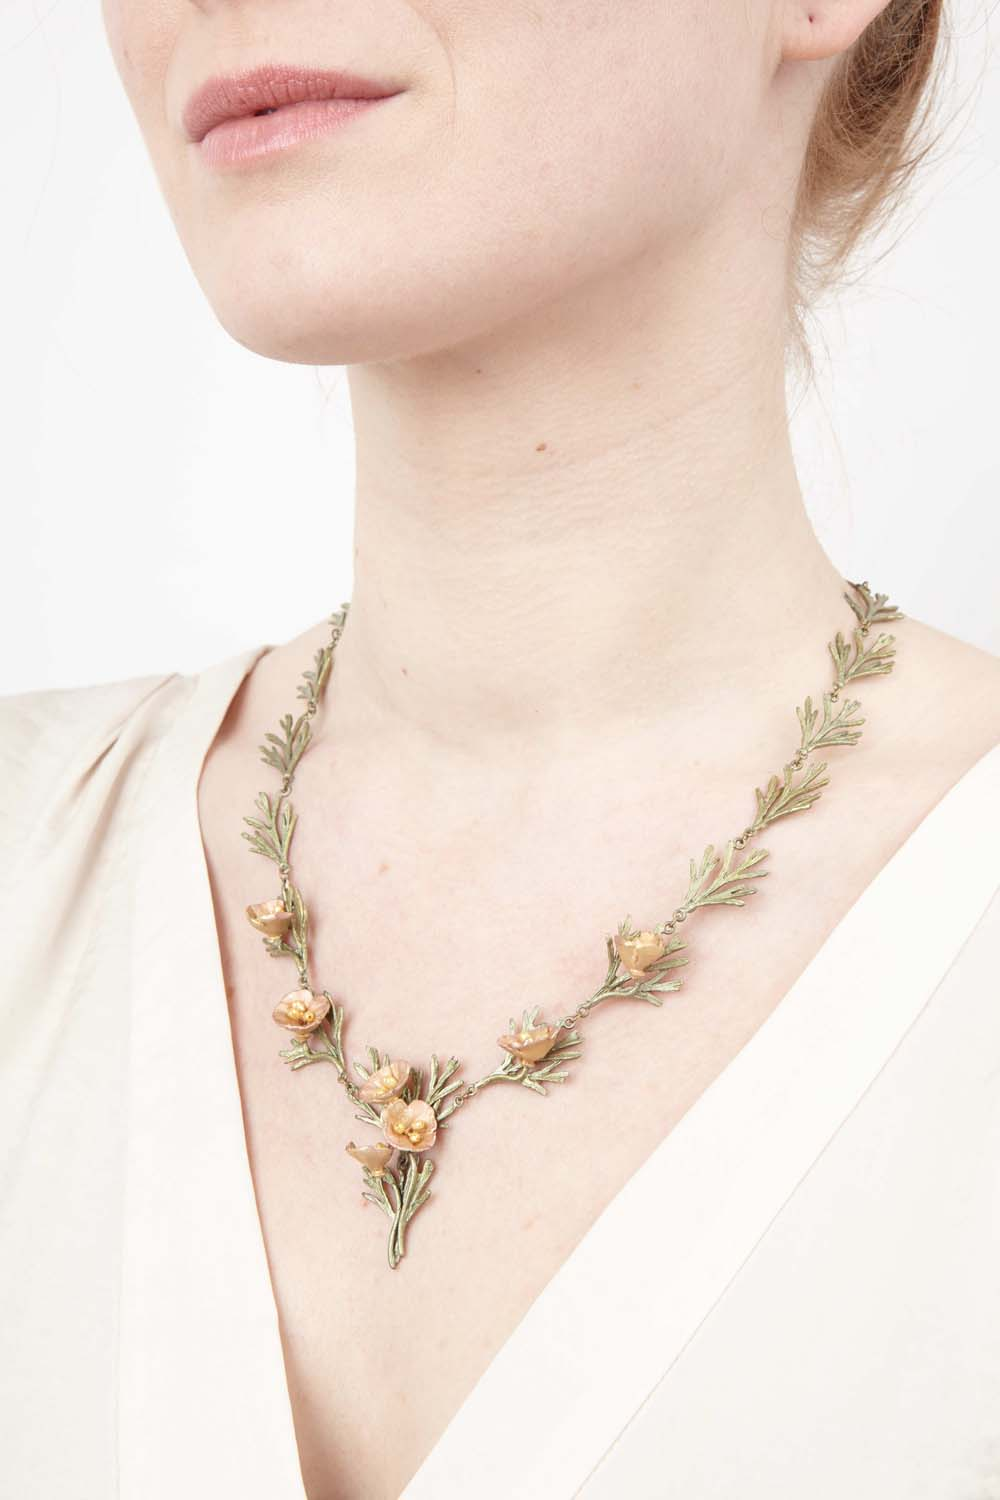 California Poppy Necklace - Leaves and Flowers